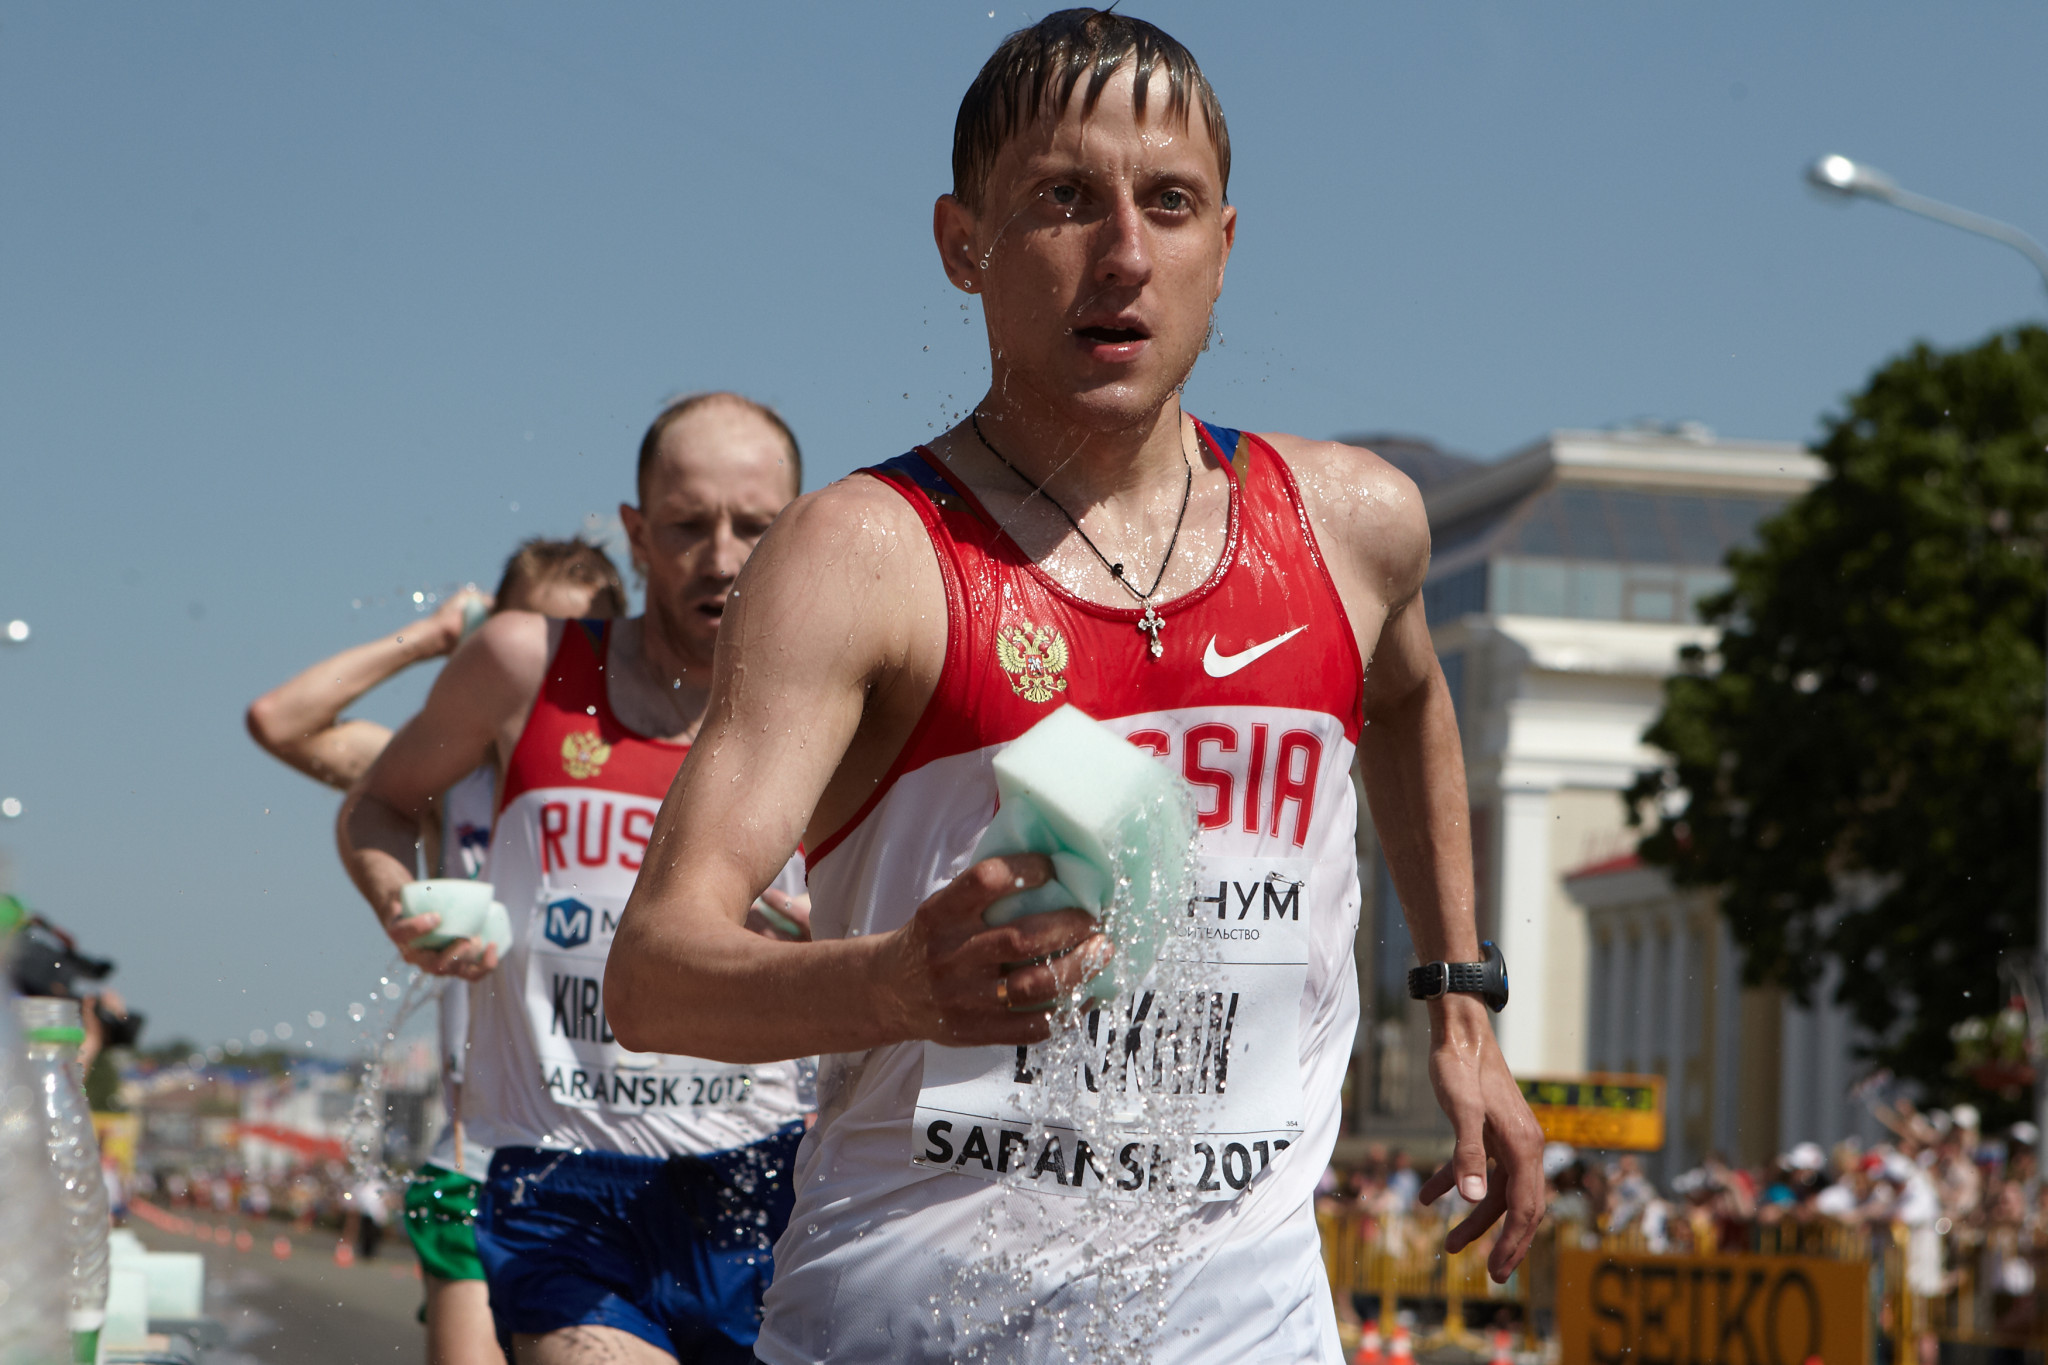 Russian race walker Bakulin handed eight-year doping ban for second offence